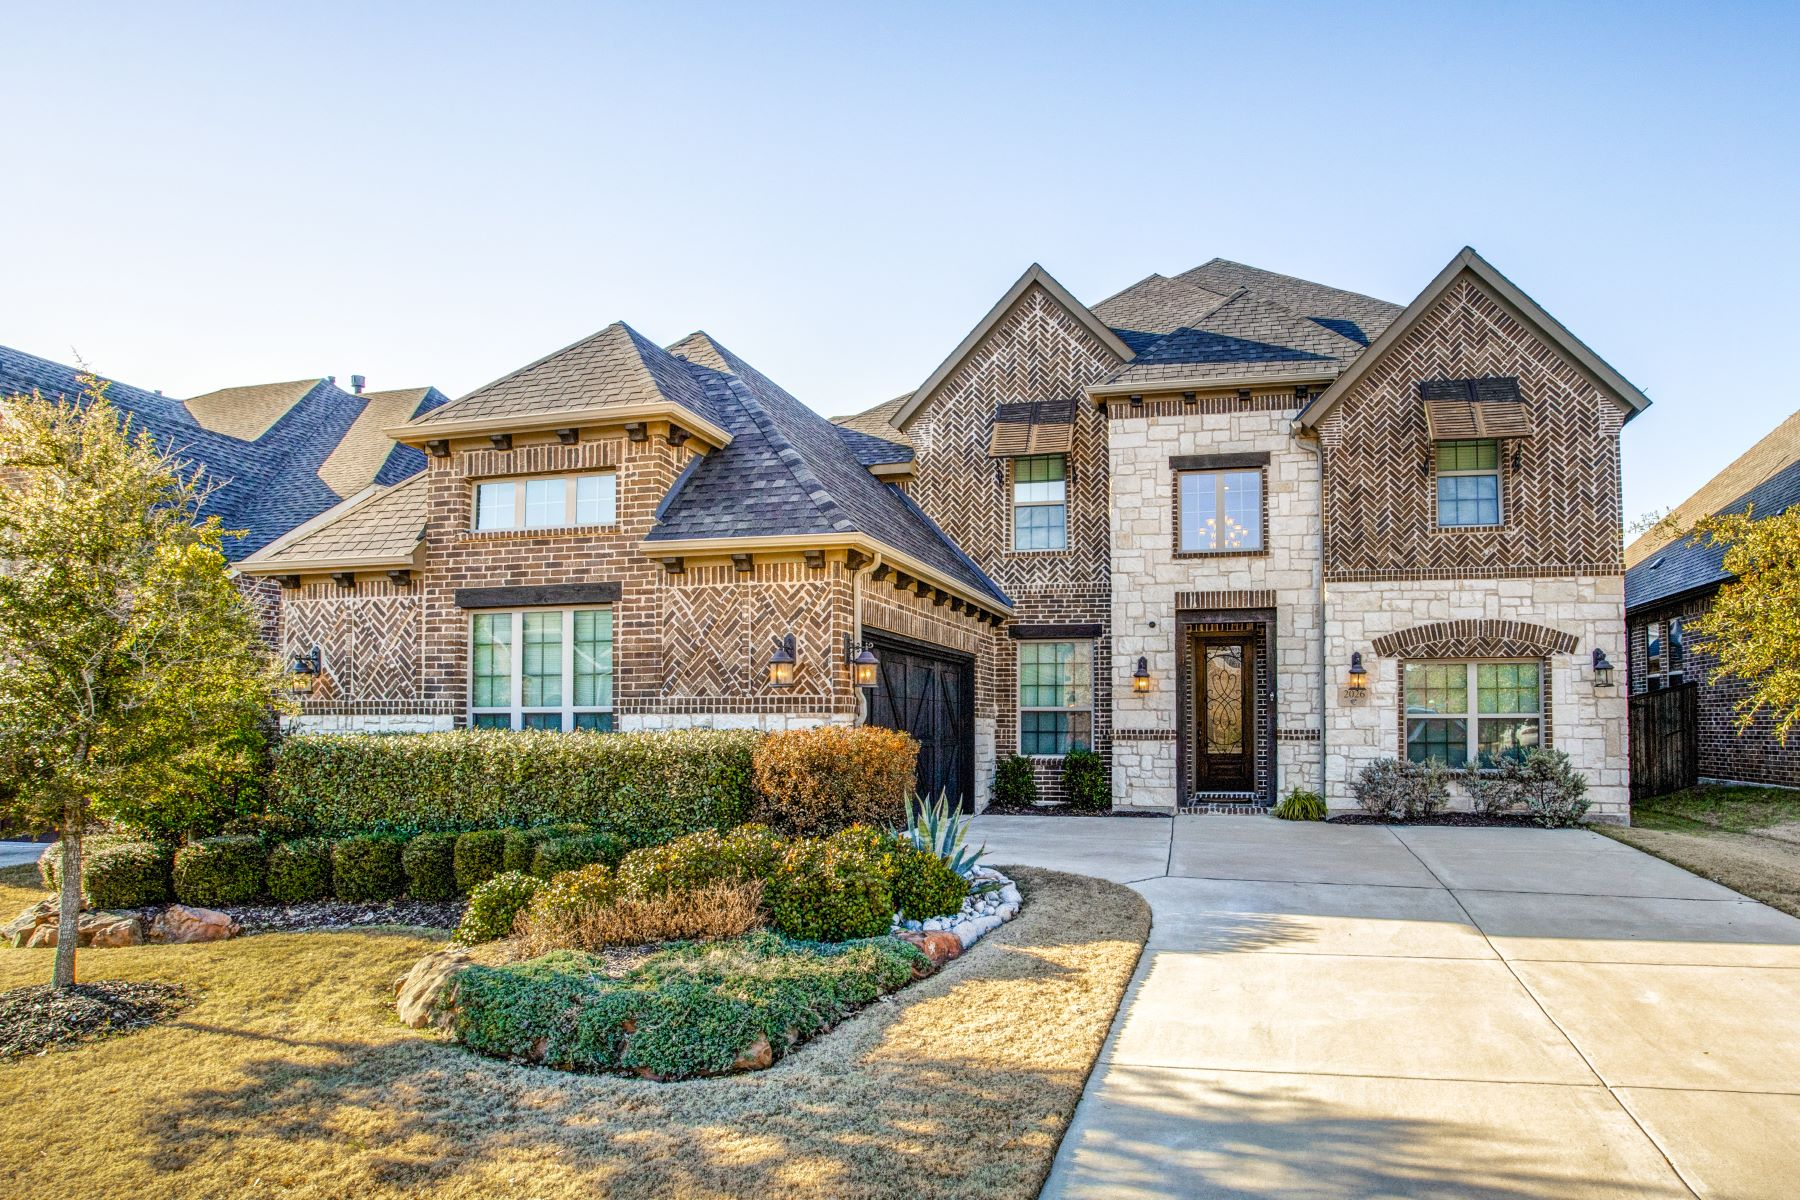 Single Family Homes for Sale at 2026 Grassland, Allen 2026 Grassland Drive Allen, Texas 75013 United States